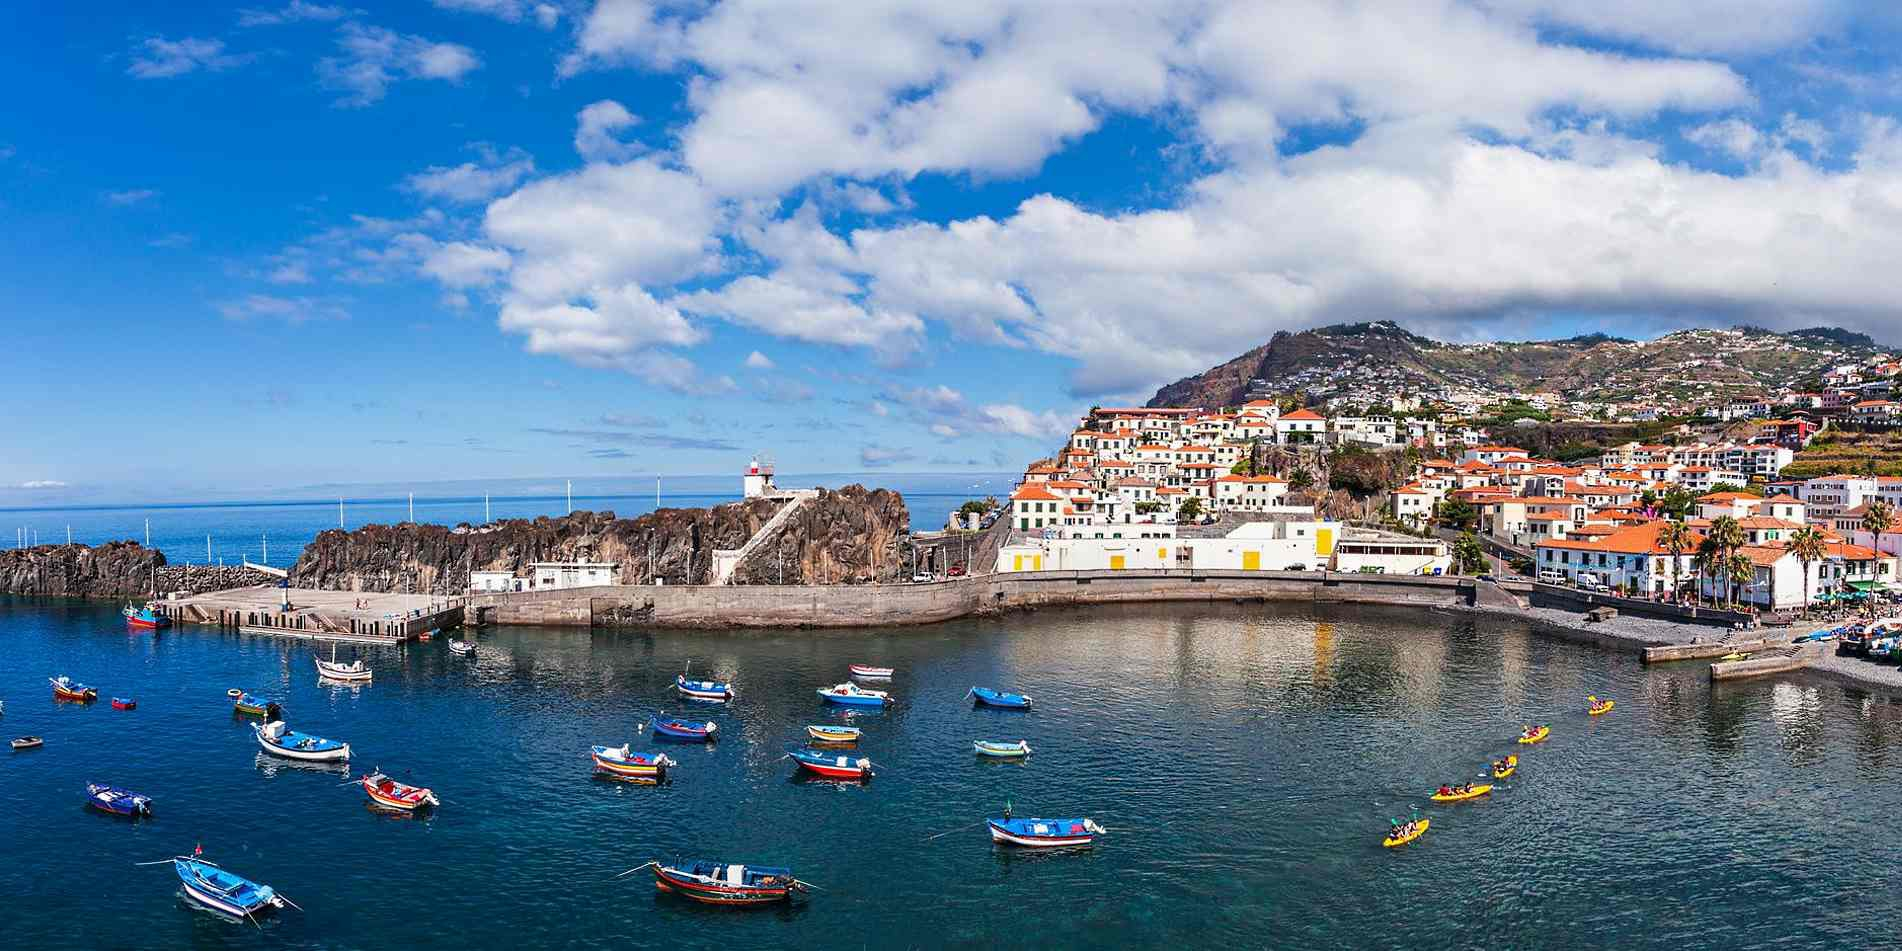 Tours Excursions And Things To Do Madeira Sunbonoo Com